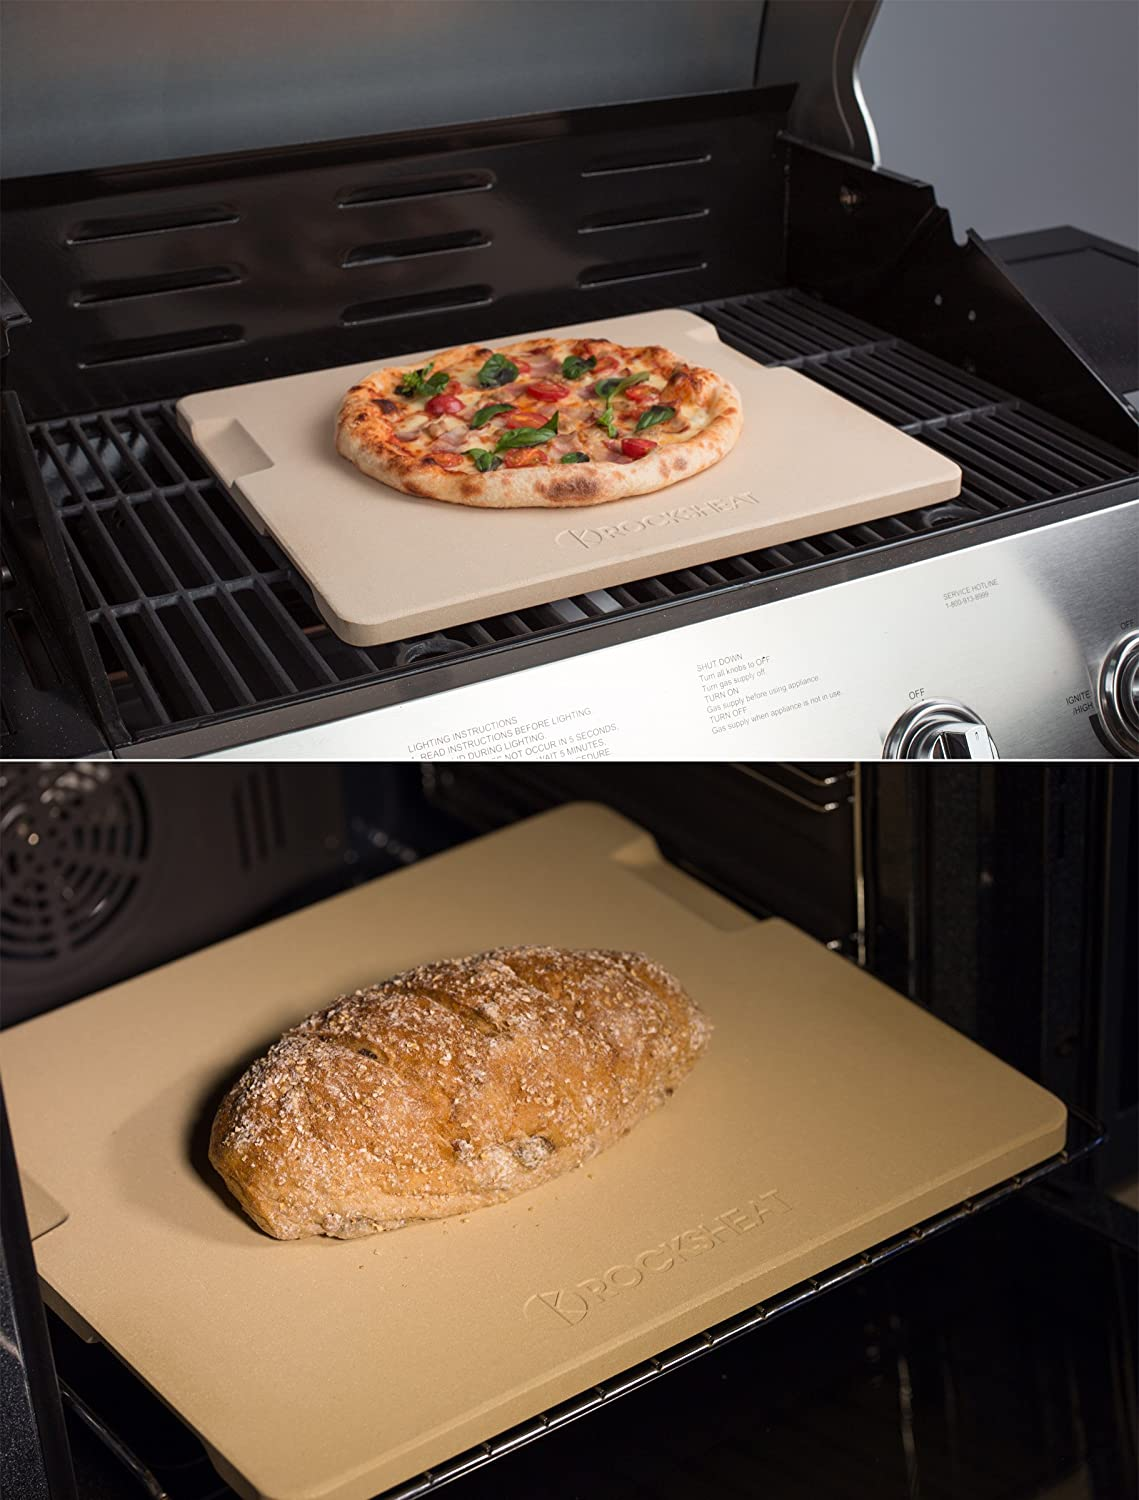 """Pizza Stone Baking & Grilling Stone, Perfect for Oven, BBQ and Grill. Innovative Double - faced Built - in 4 Handles Design (14"""" x 16"""" x 0.67"""" Rectangular) : Garden & Outdoor"""